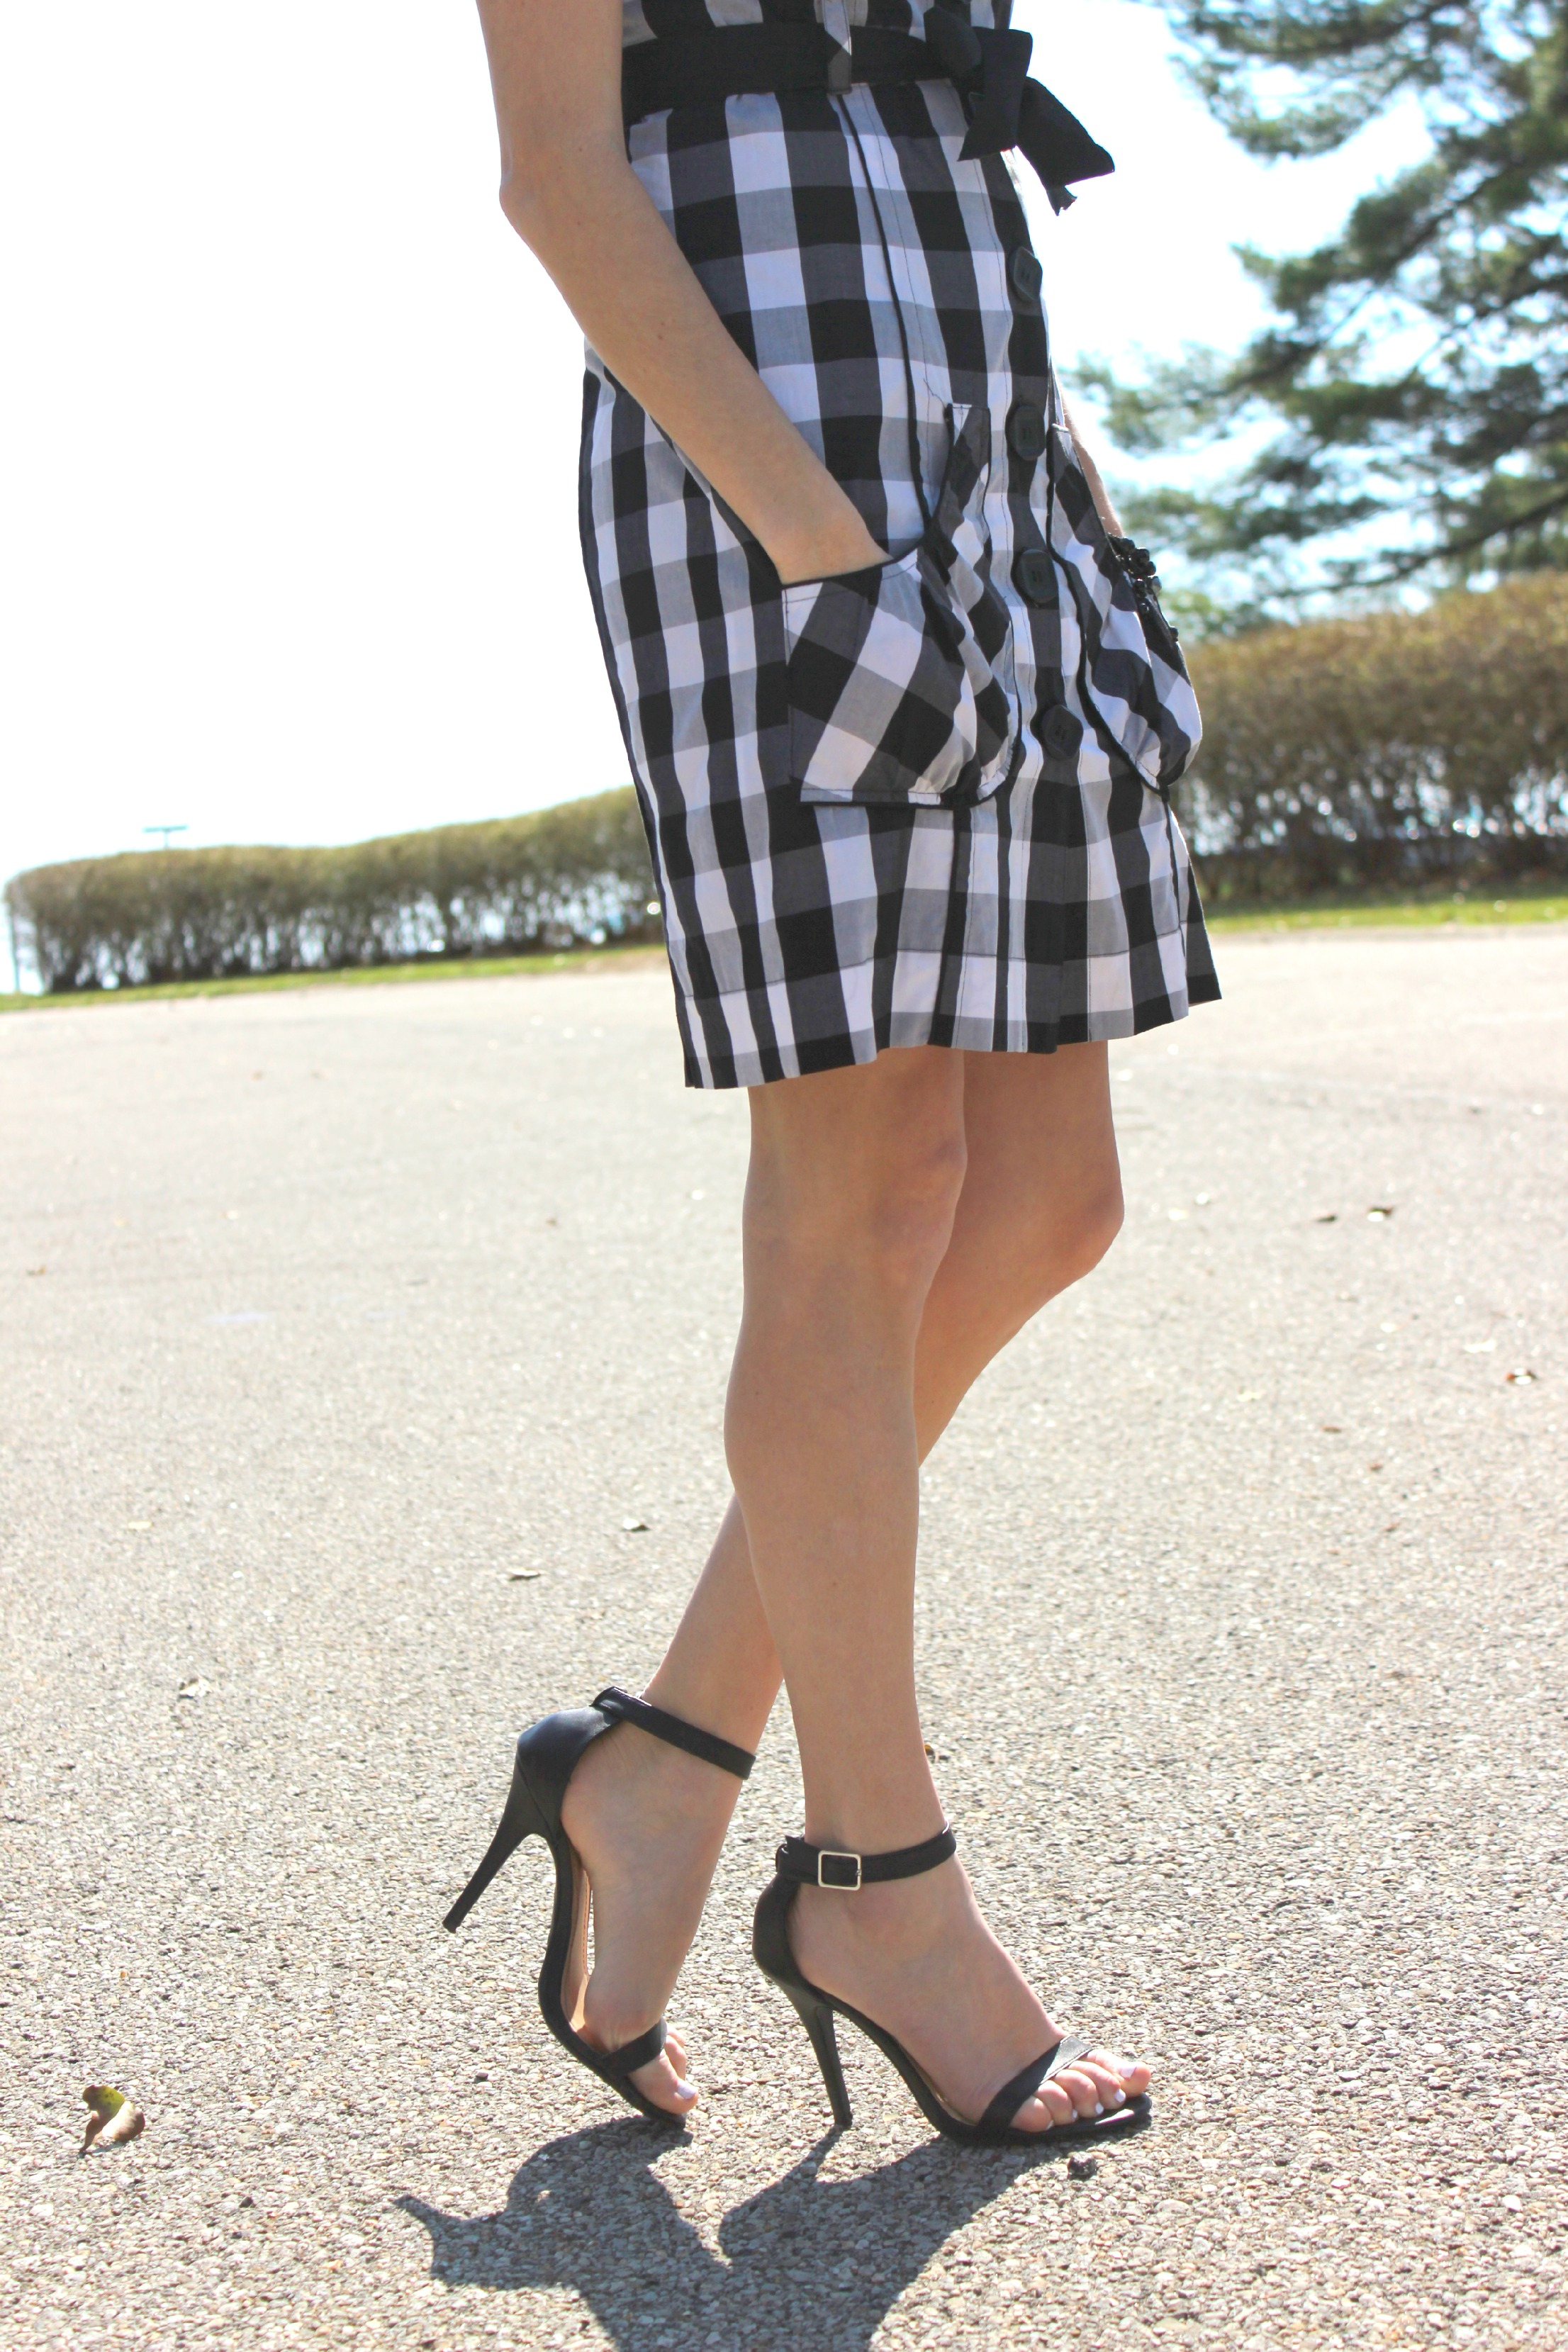 Black Ankle Strap Heels with Gingham Dress